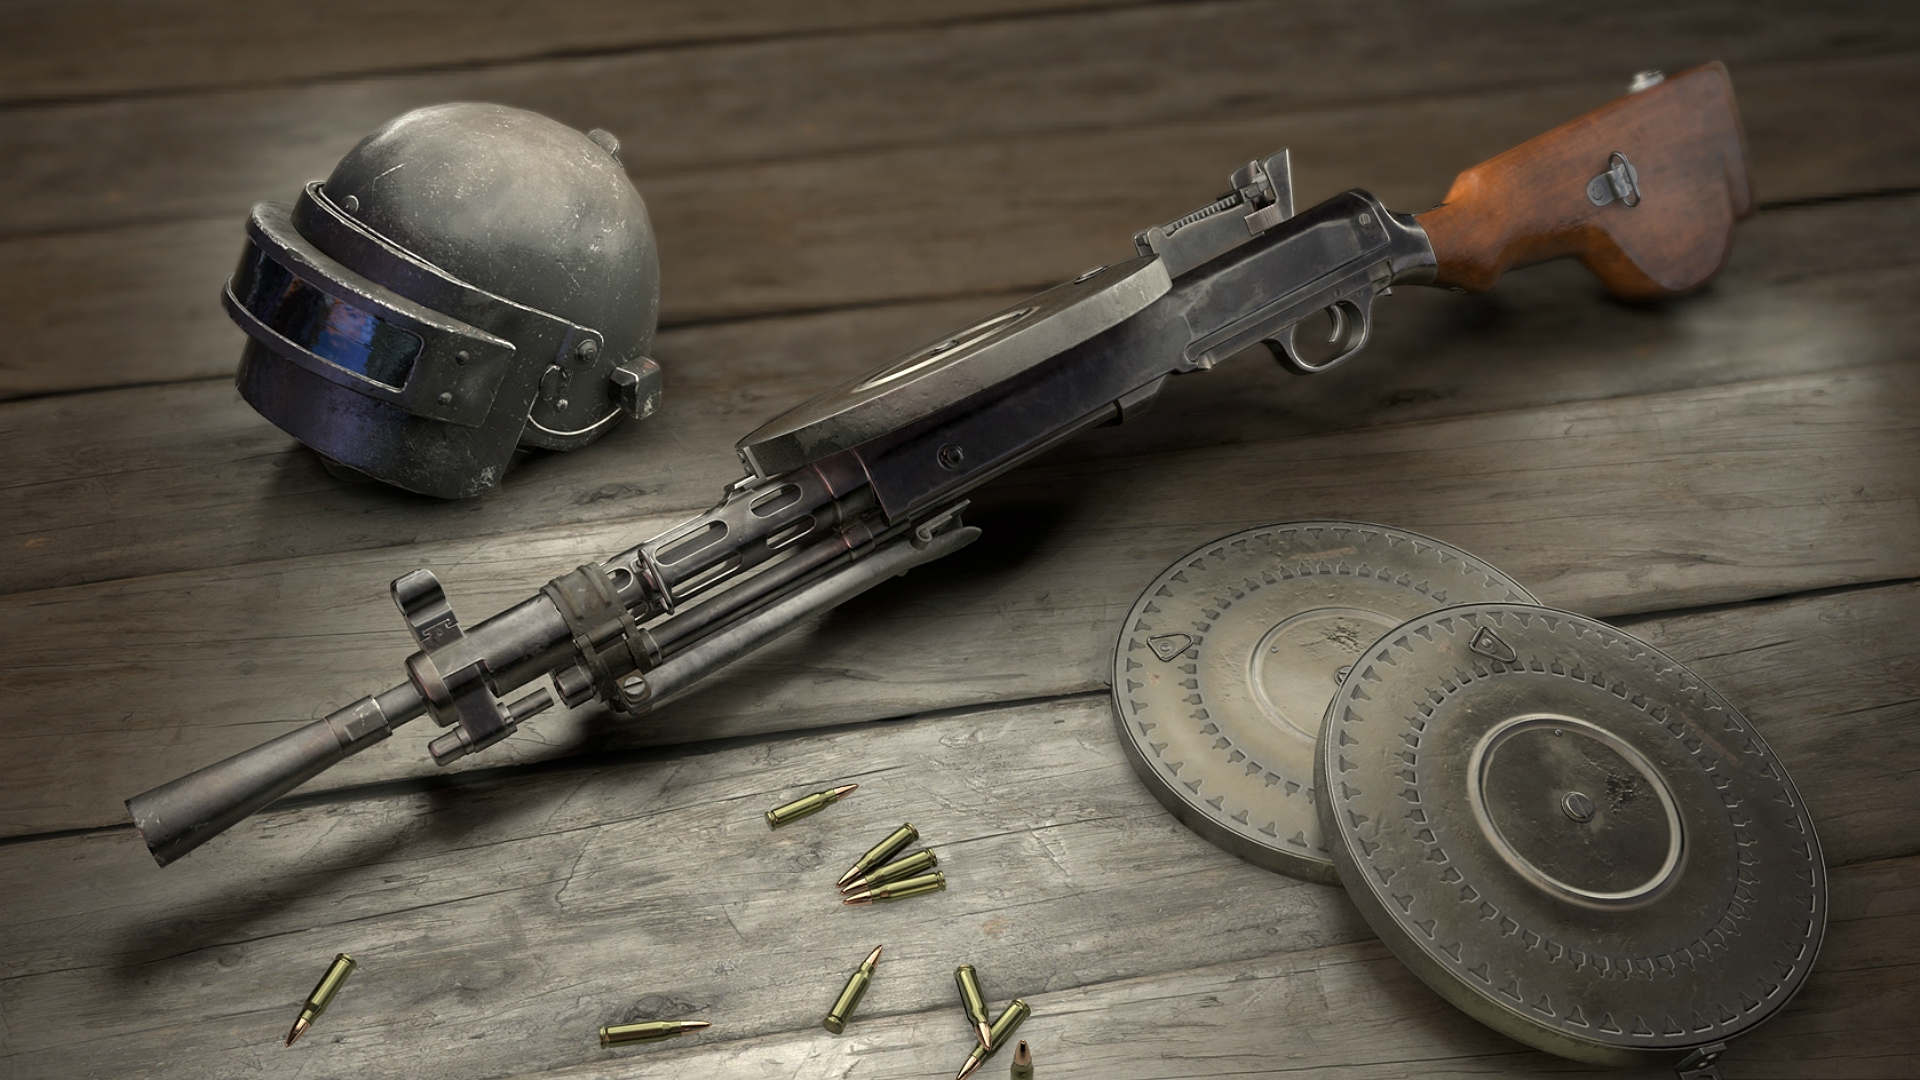 PUBG weapons guide: the best guns for getting a chicken dinner